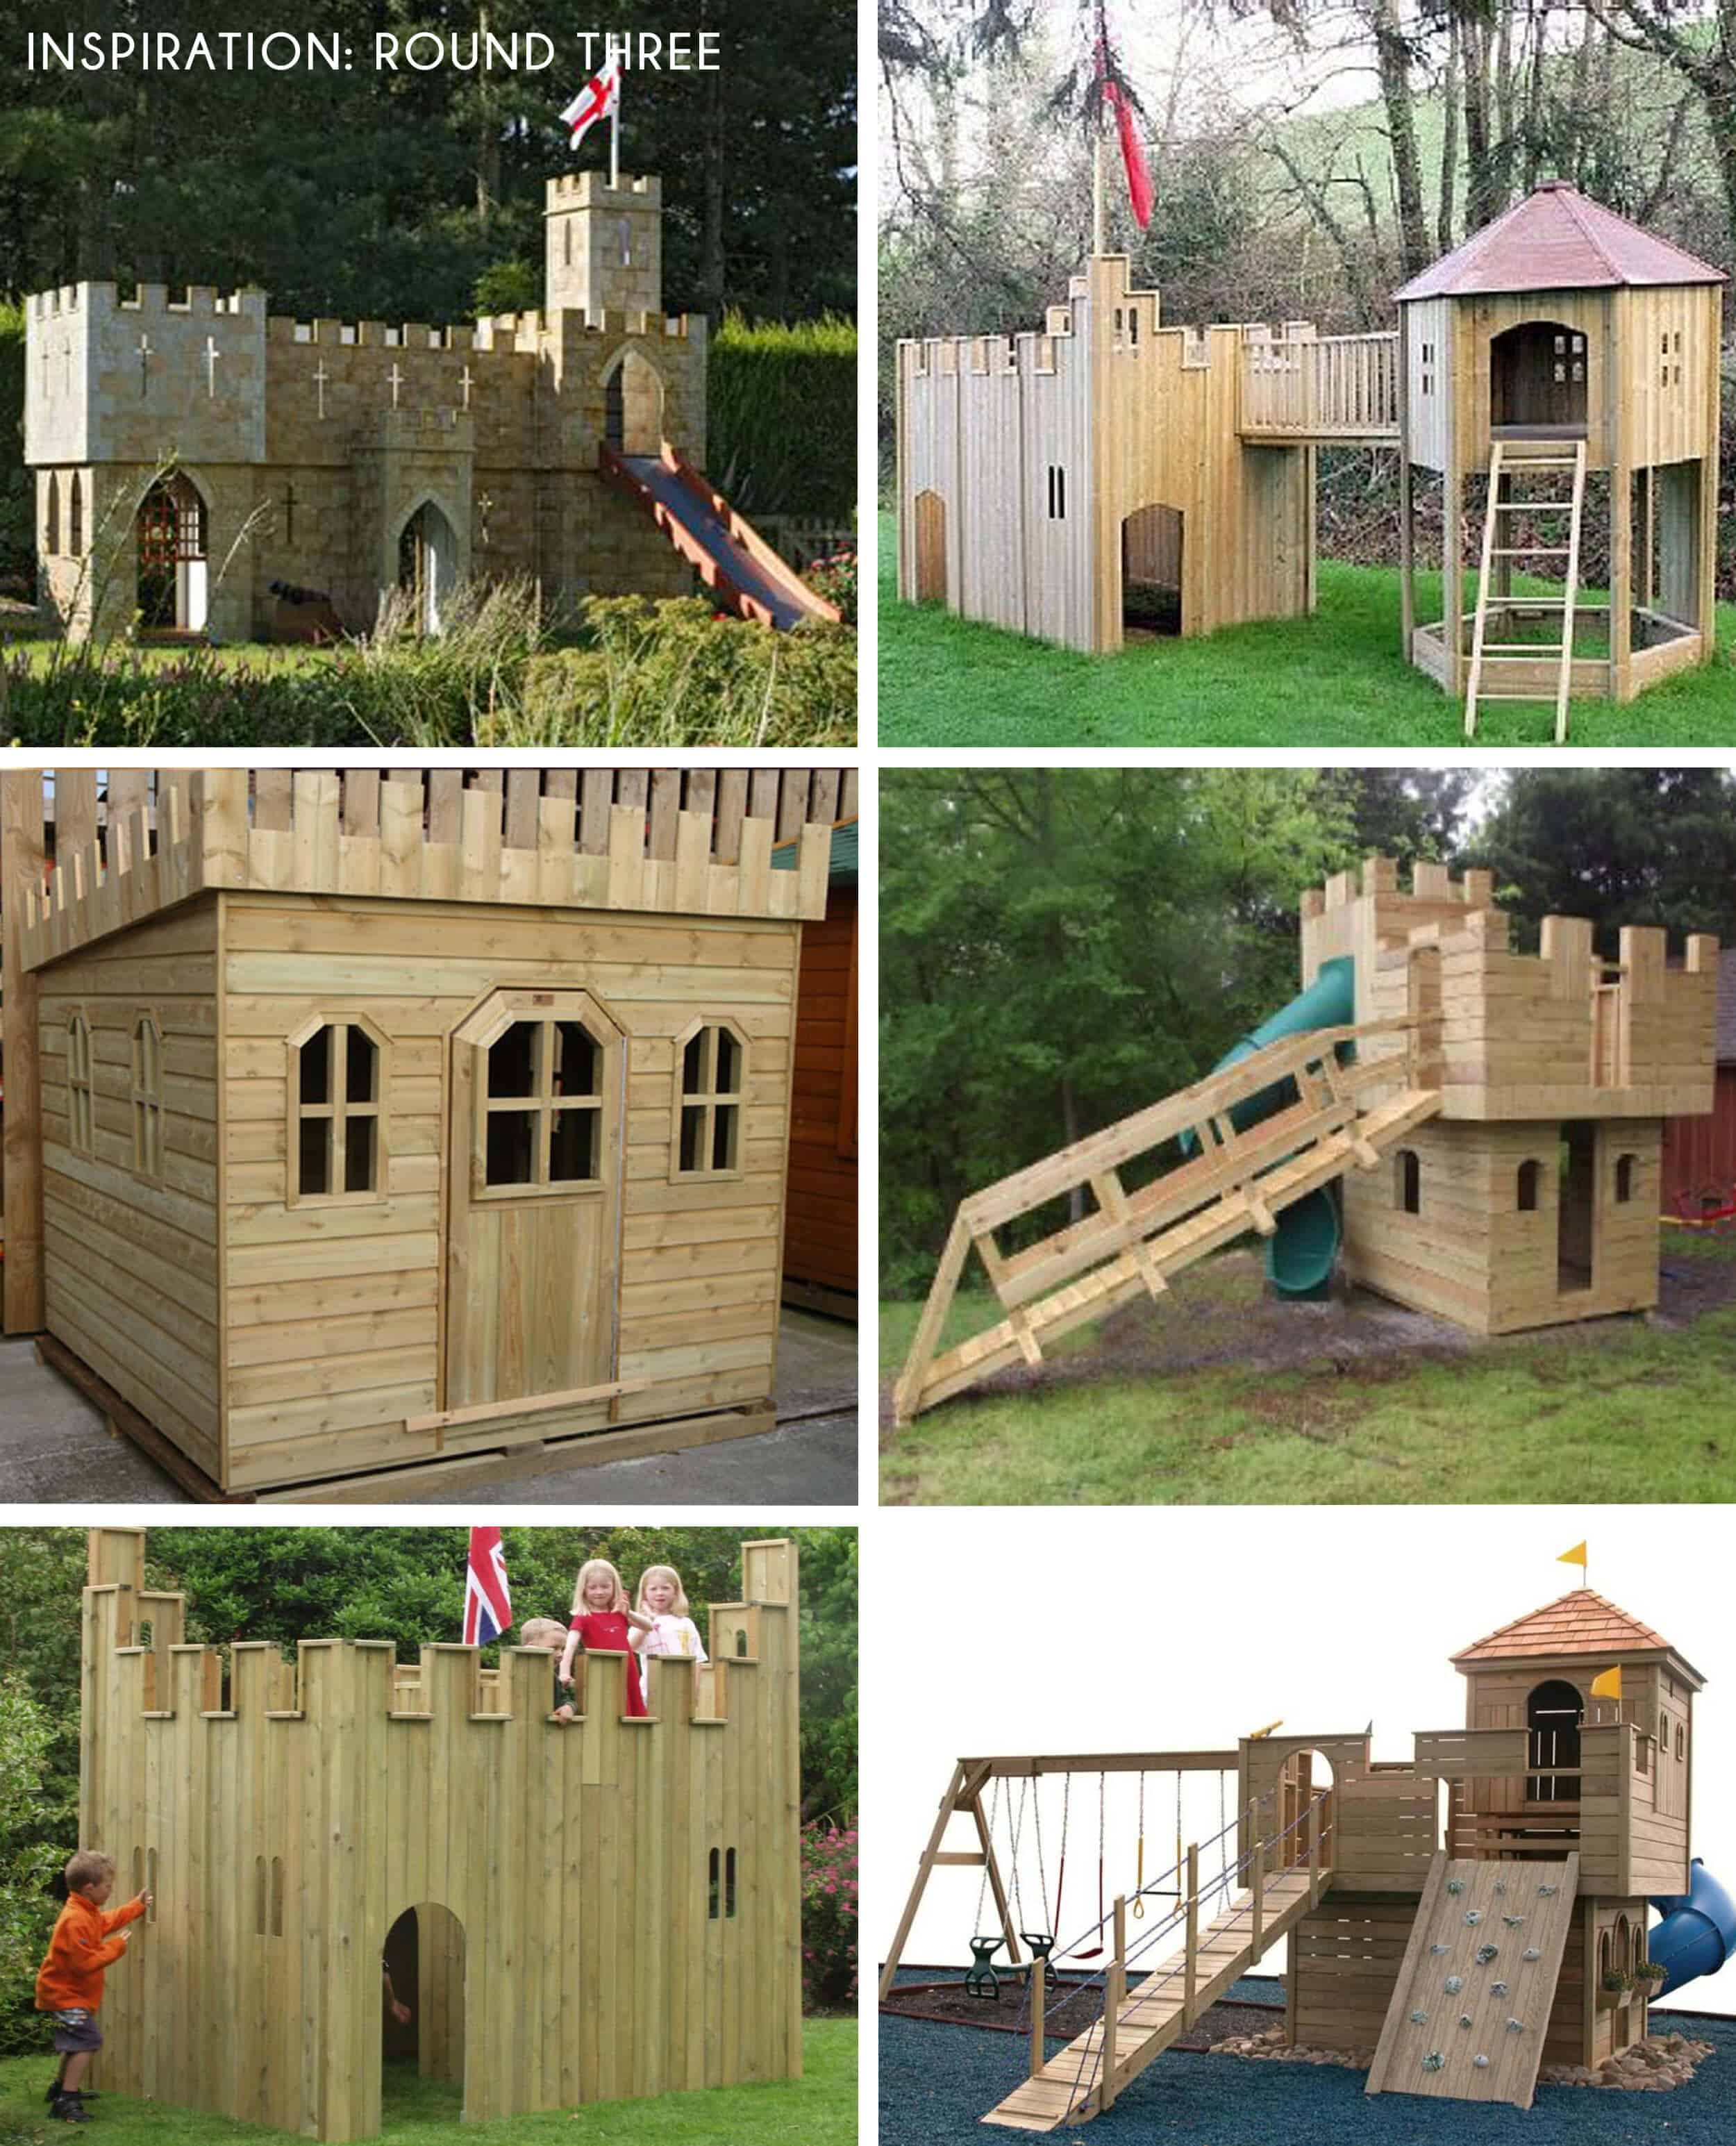 Emily-Henderson_Waverly_Backyard_Playfort_Castle_Inspiration_Round-3